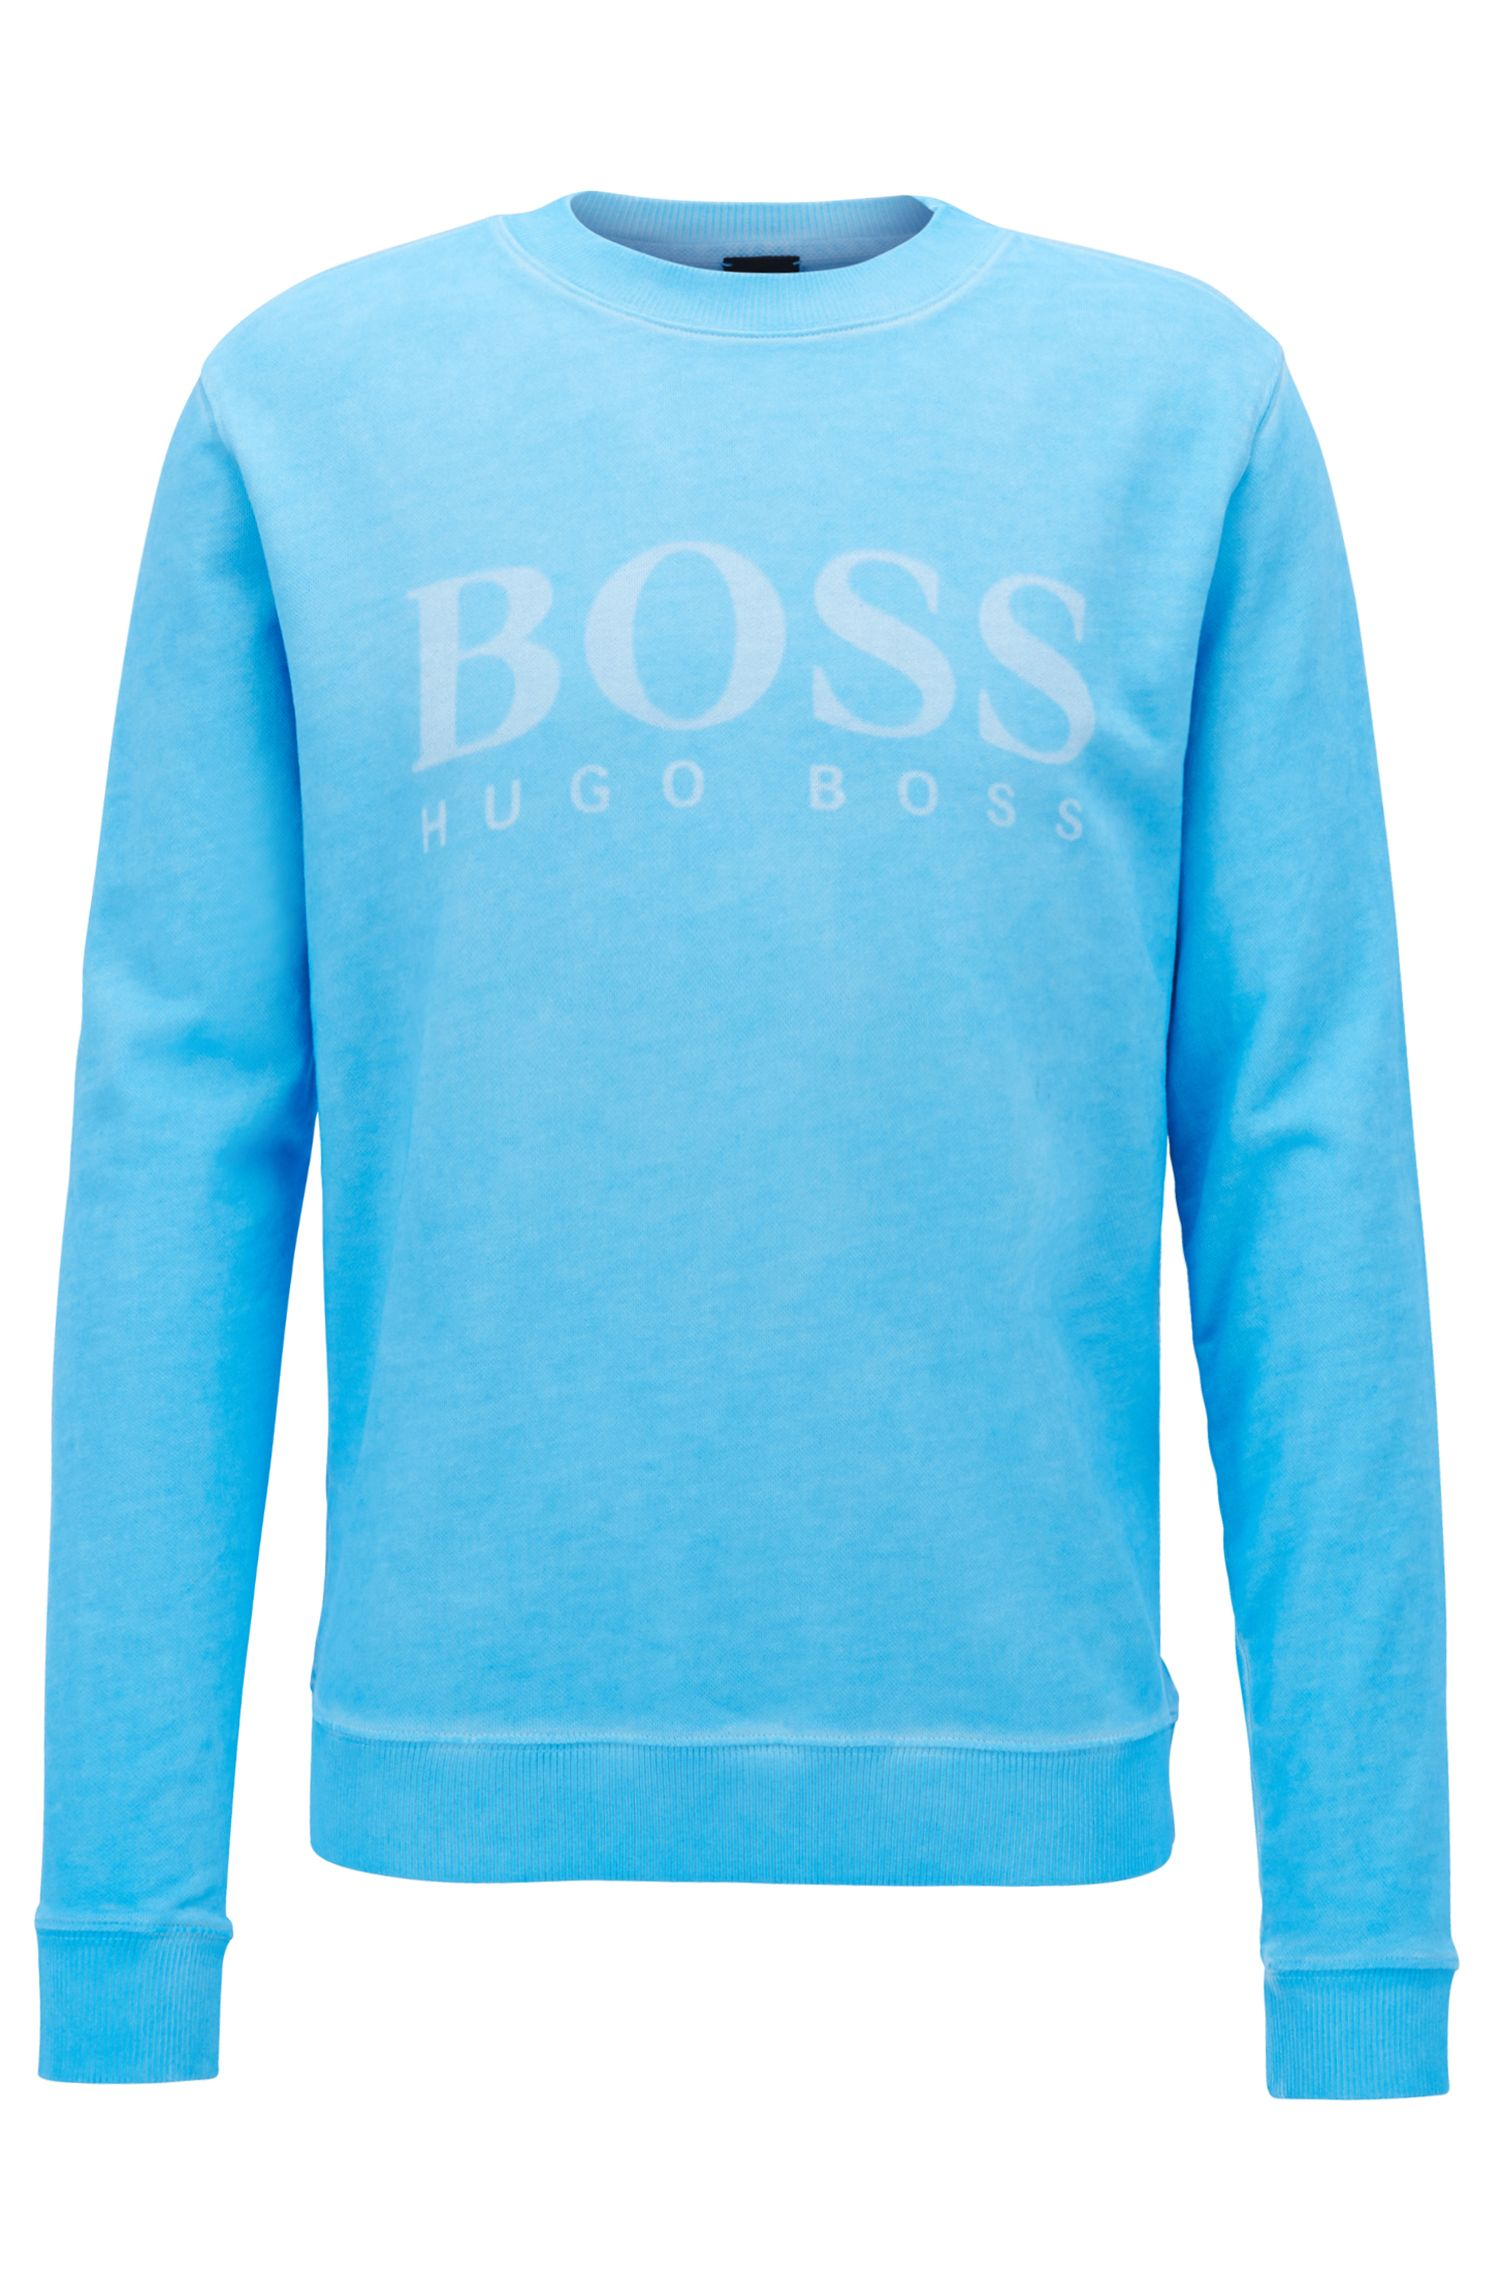 Logo sweater in cotton French terry